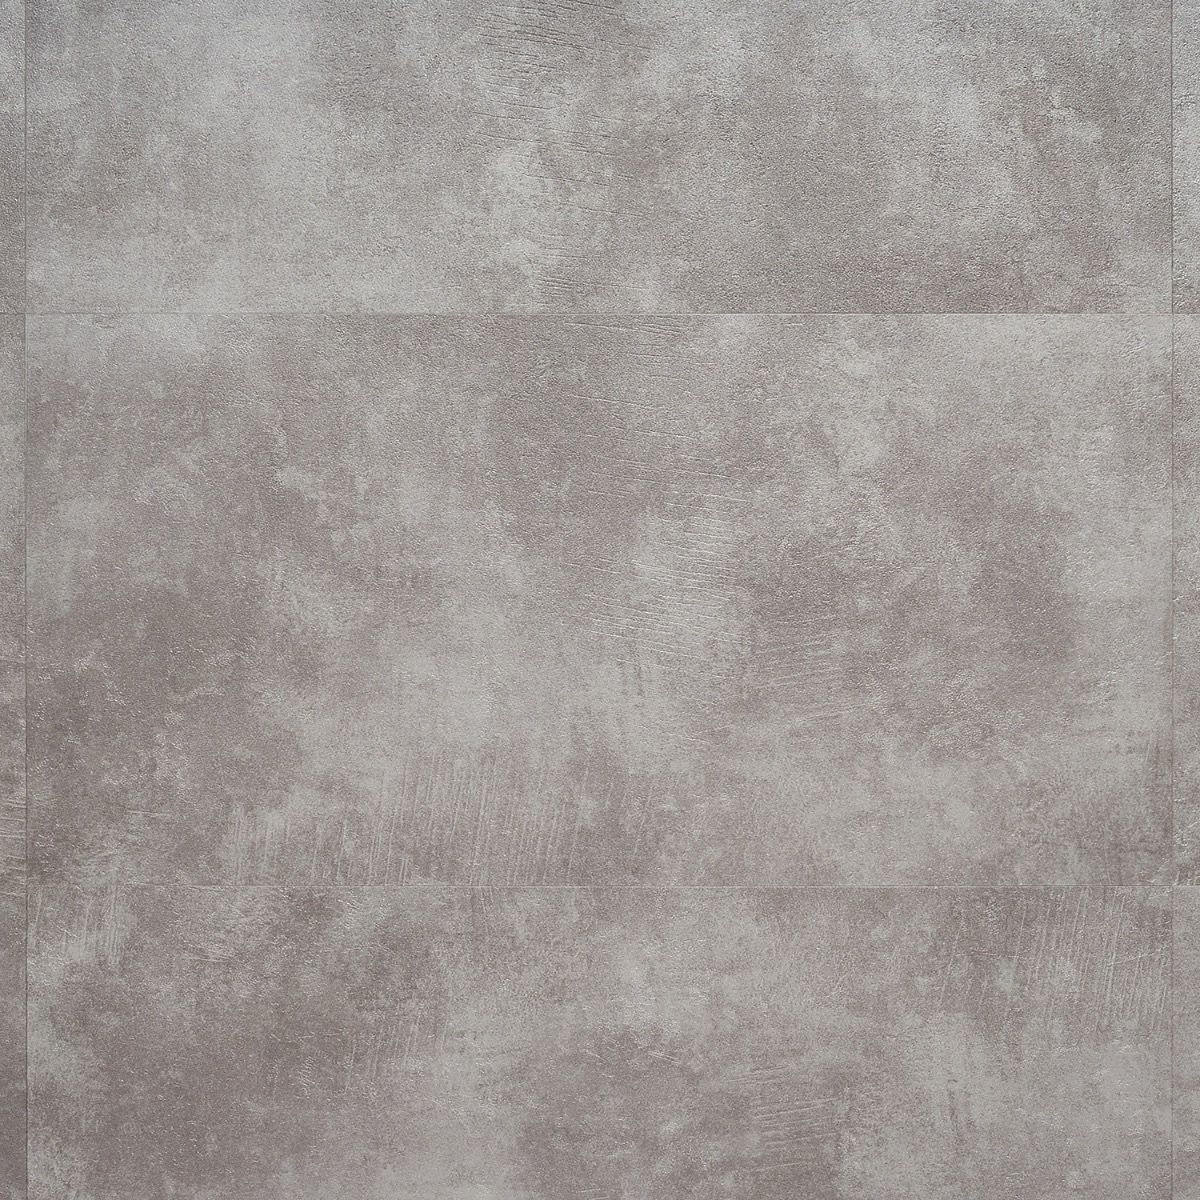 Katone Concreto Grafito 18x36 Glue Down Luxury Vinyl Tile